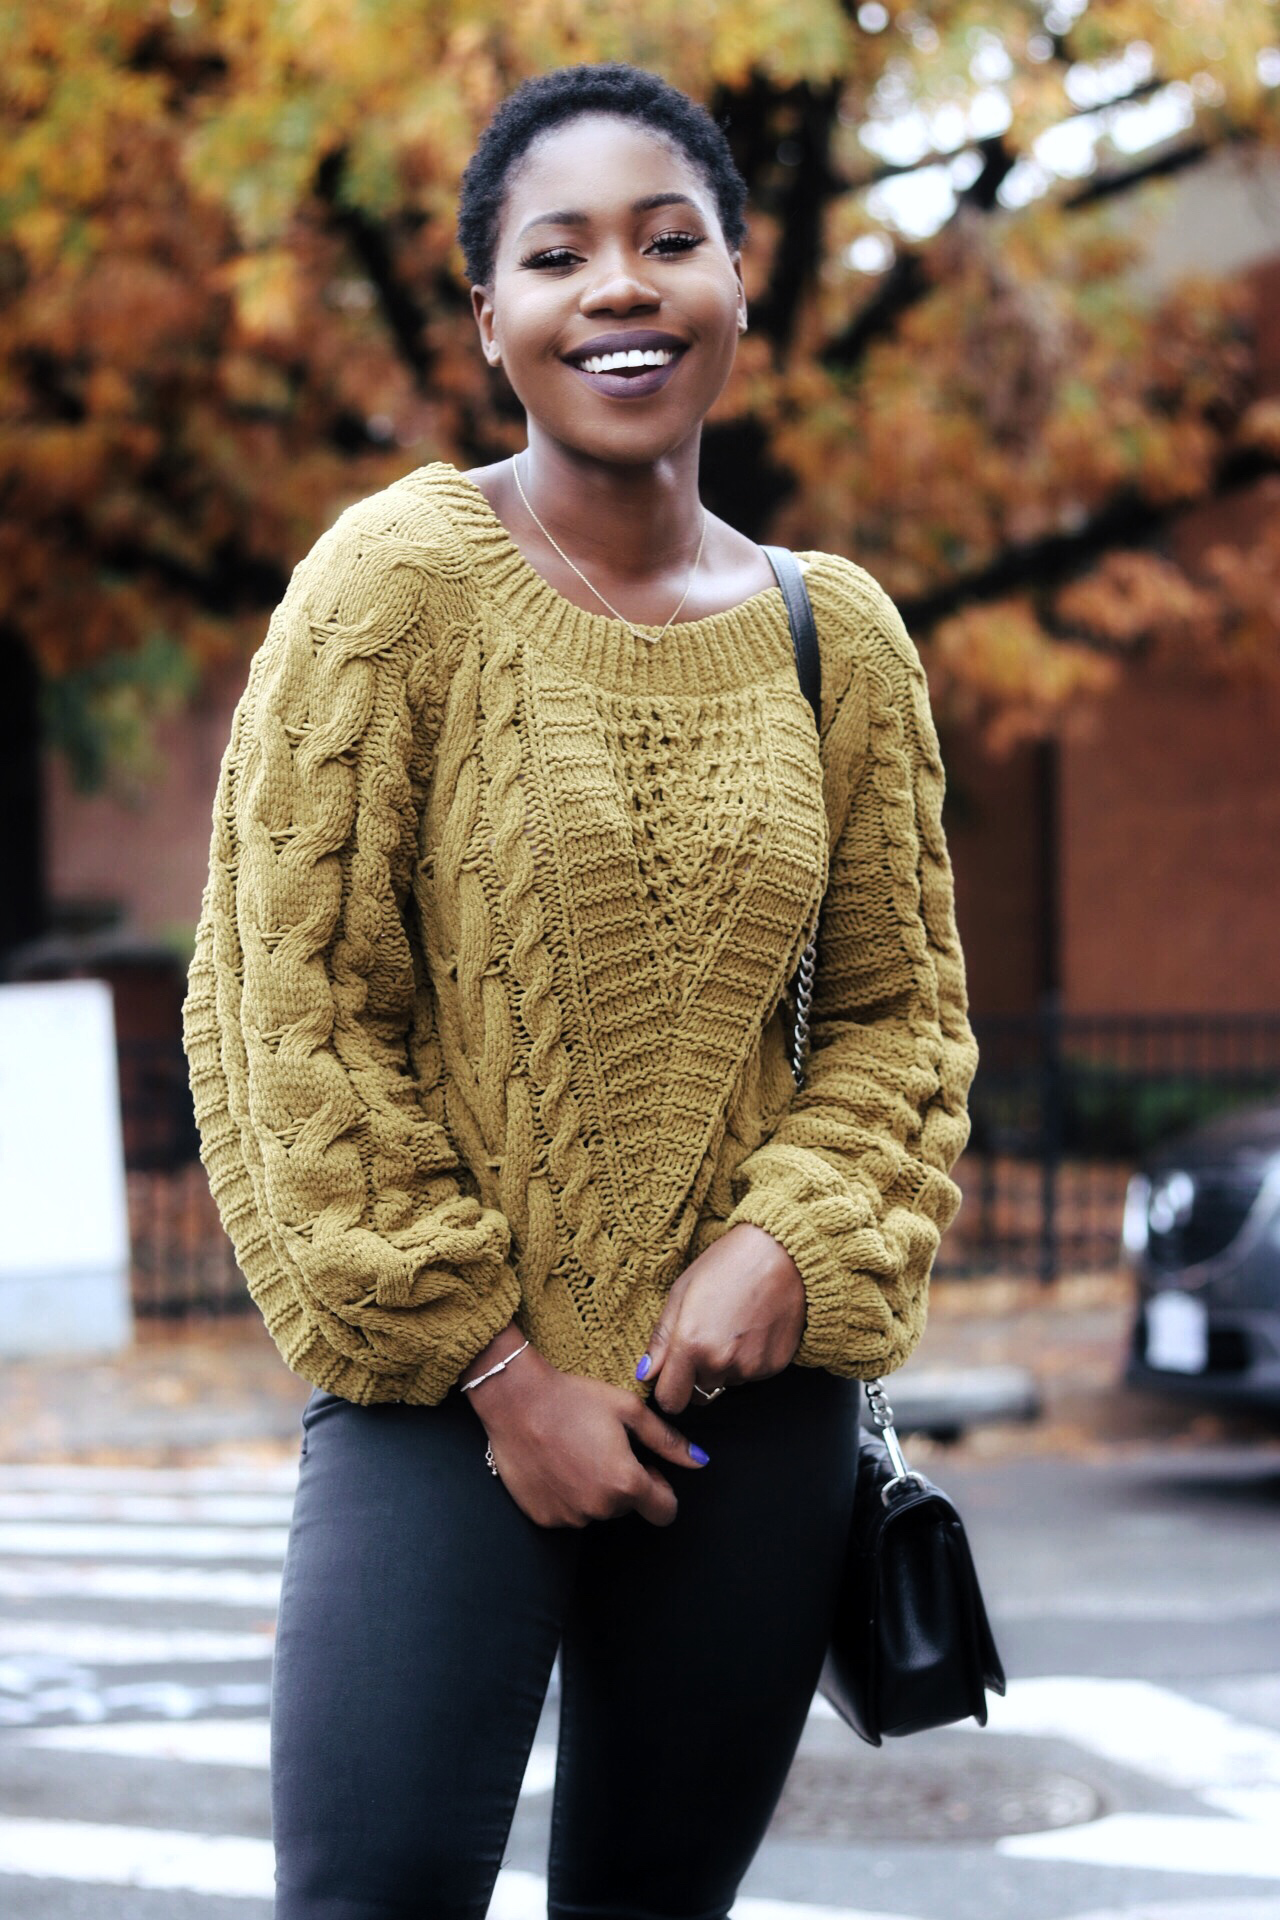 ALT = Yellow patterned sweater